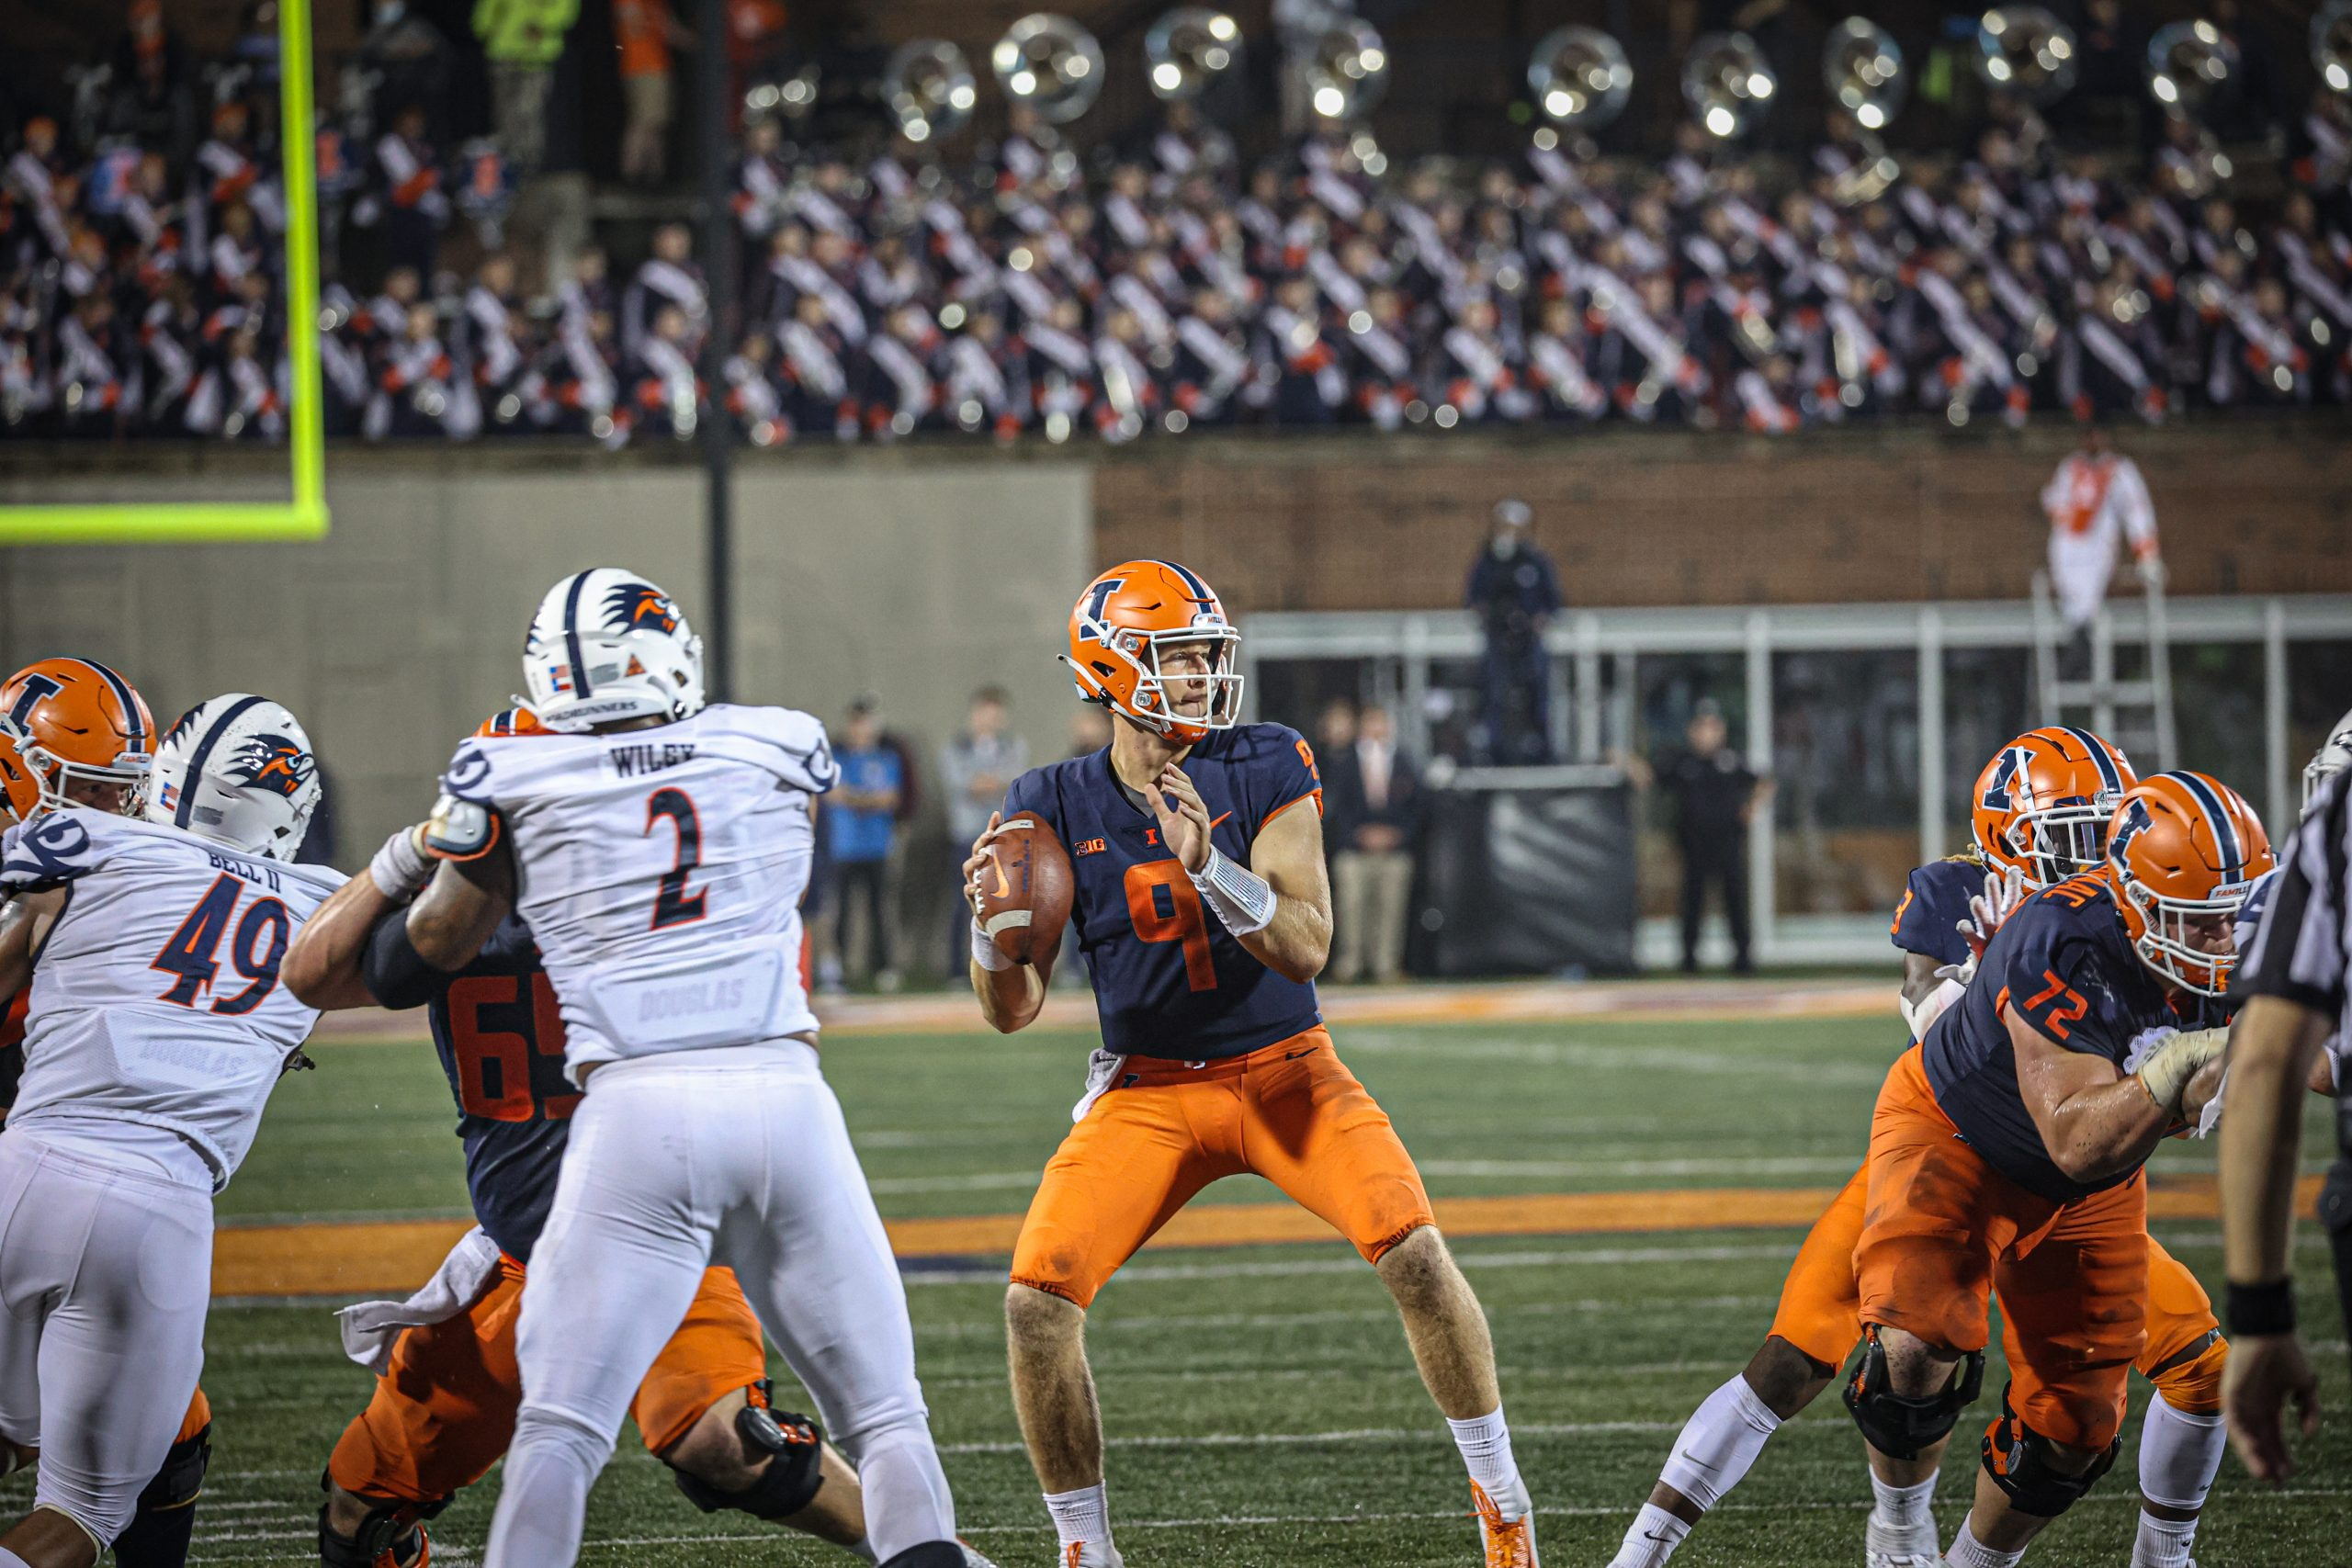 Illini Unable To Translate Week 1 Success Into Back-to-Back Wins